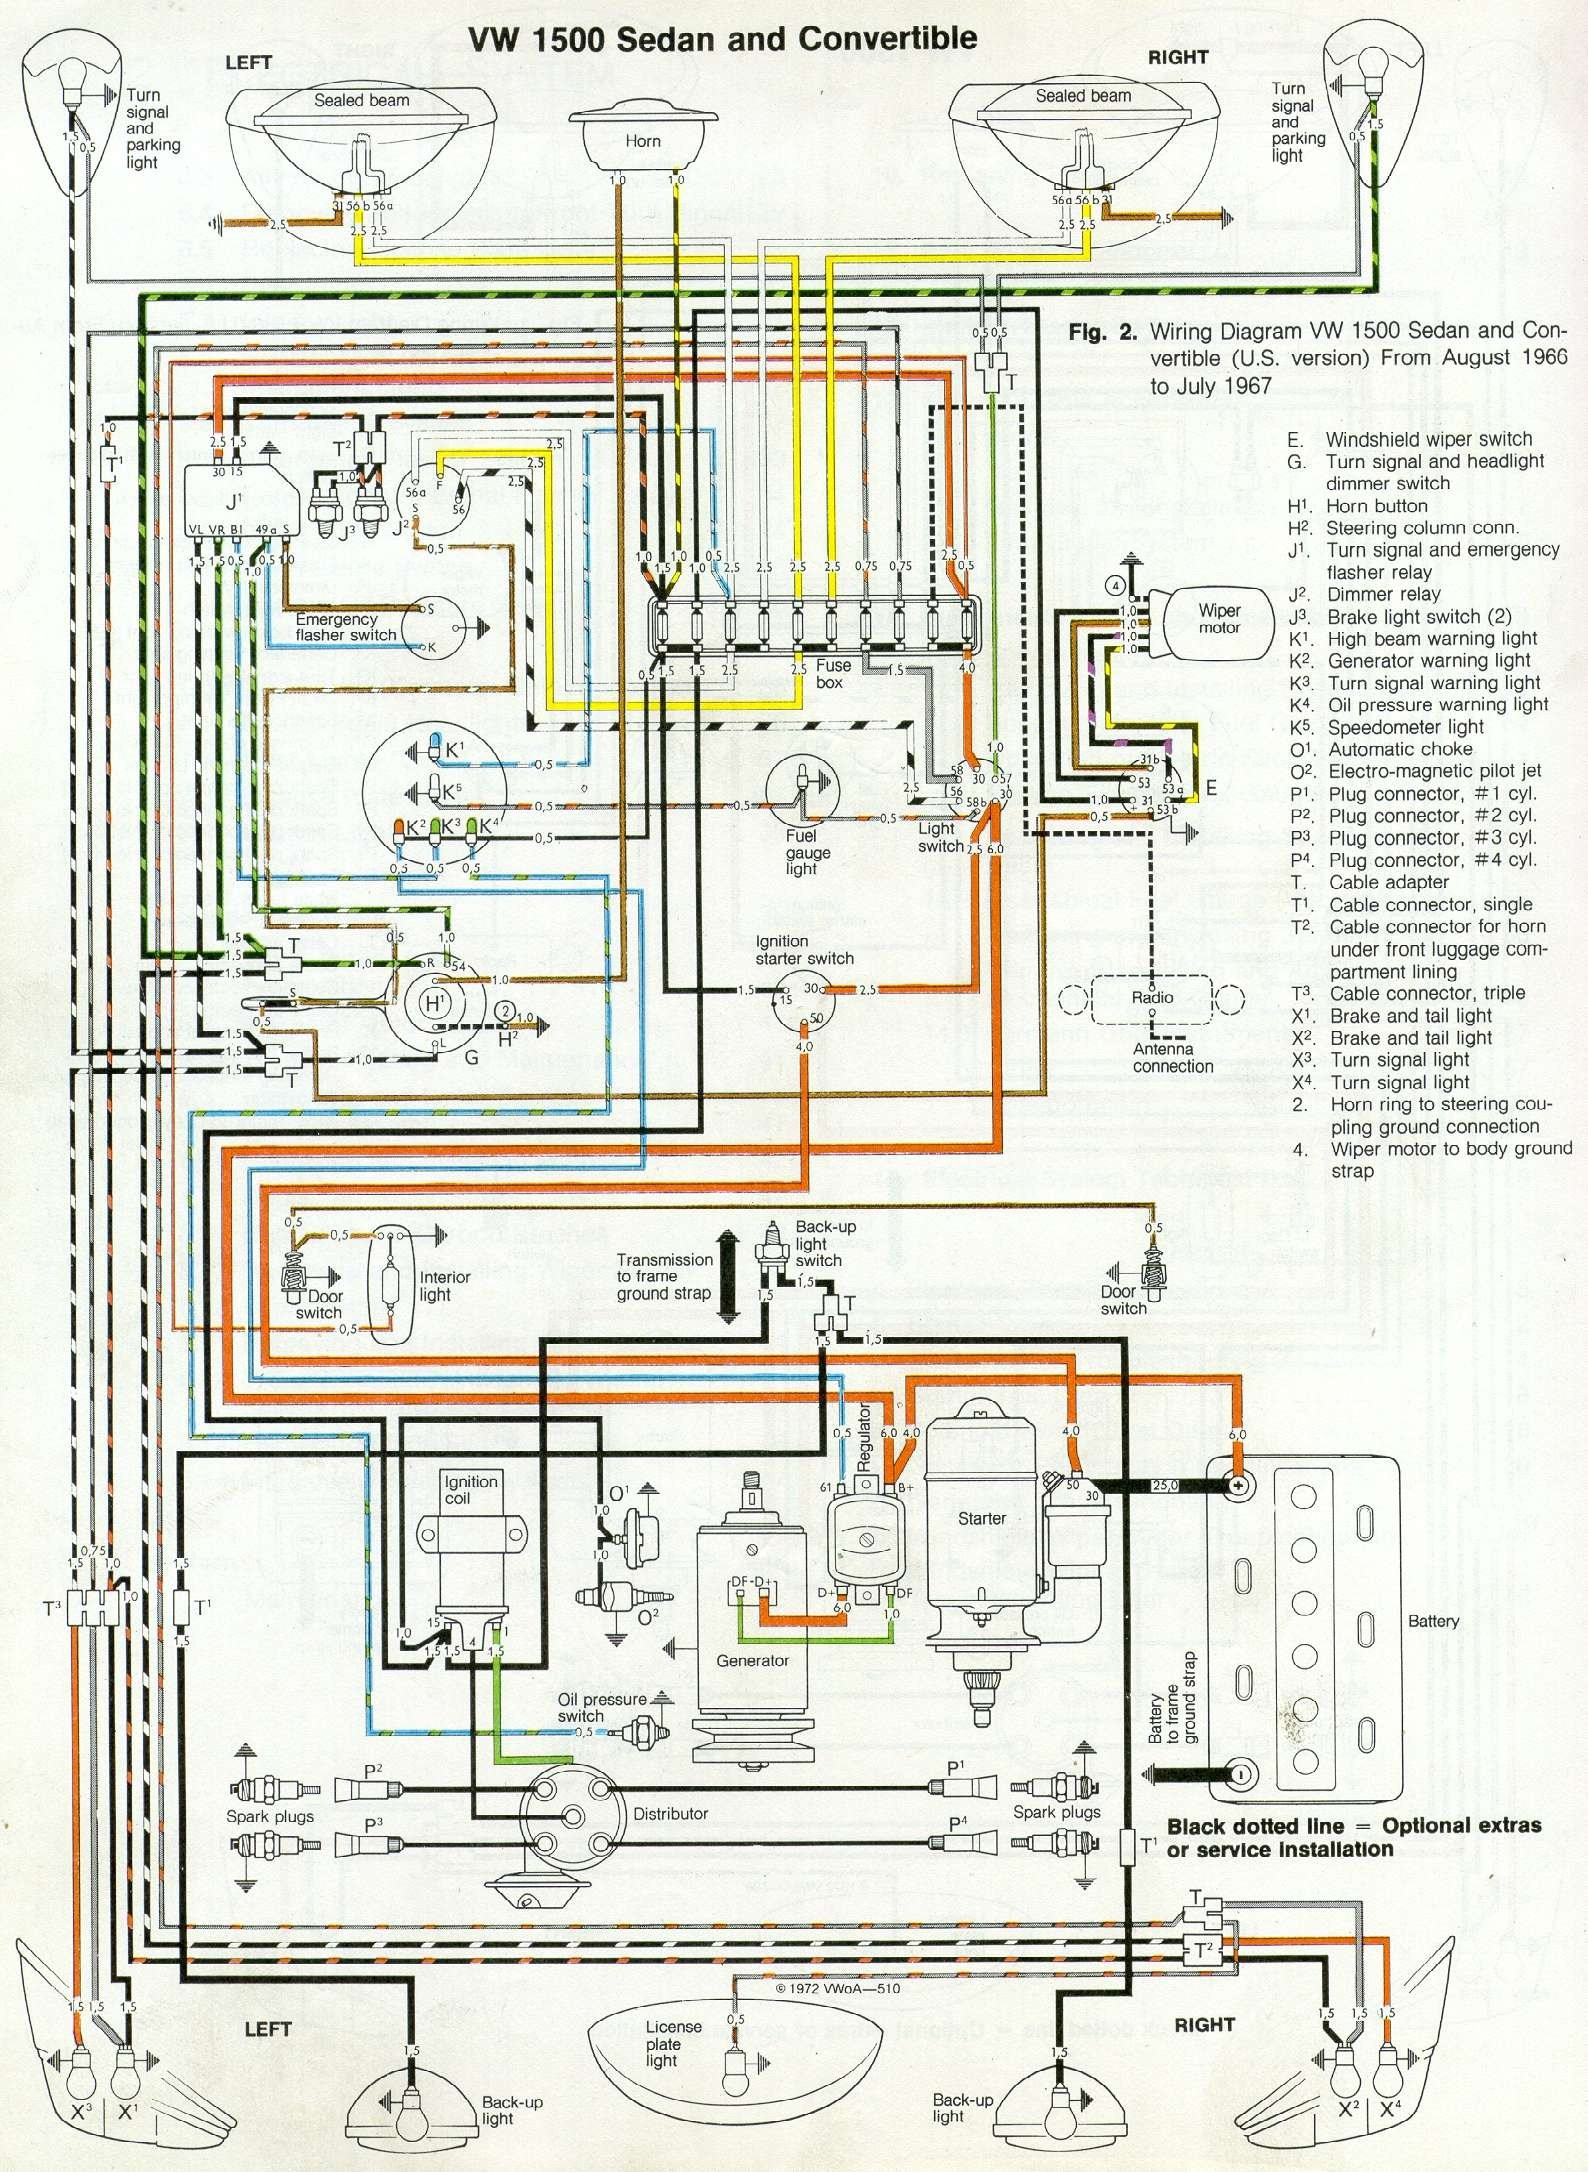 1967 vw beetle wiring harness wiring diagram 1967 VW Fuse Box 1967 Vw Wiring Harness #1